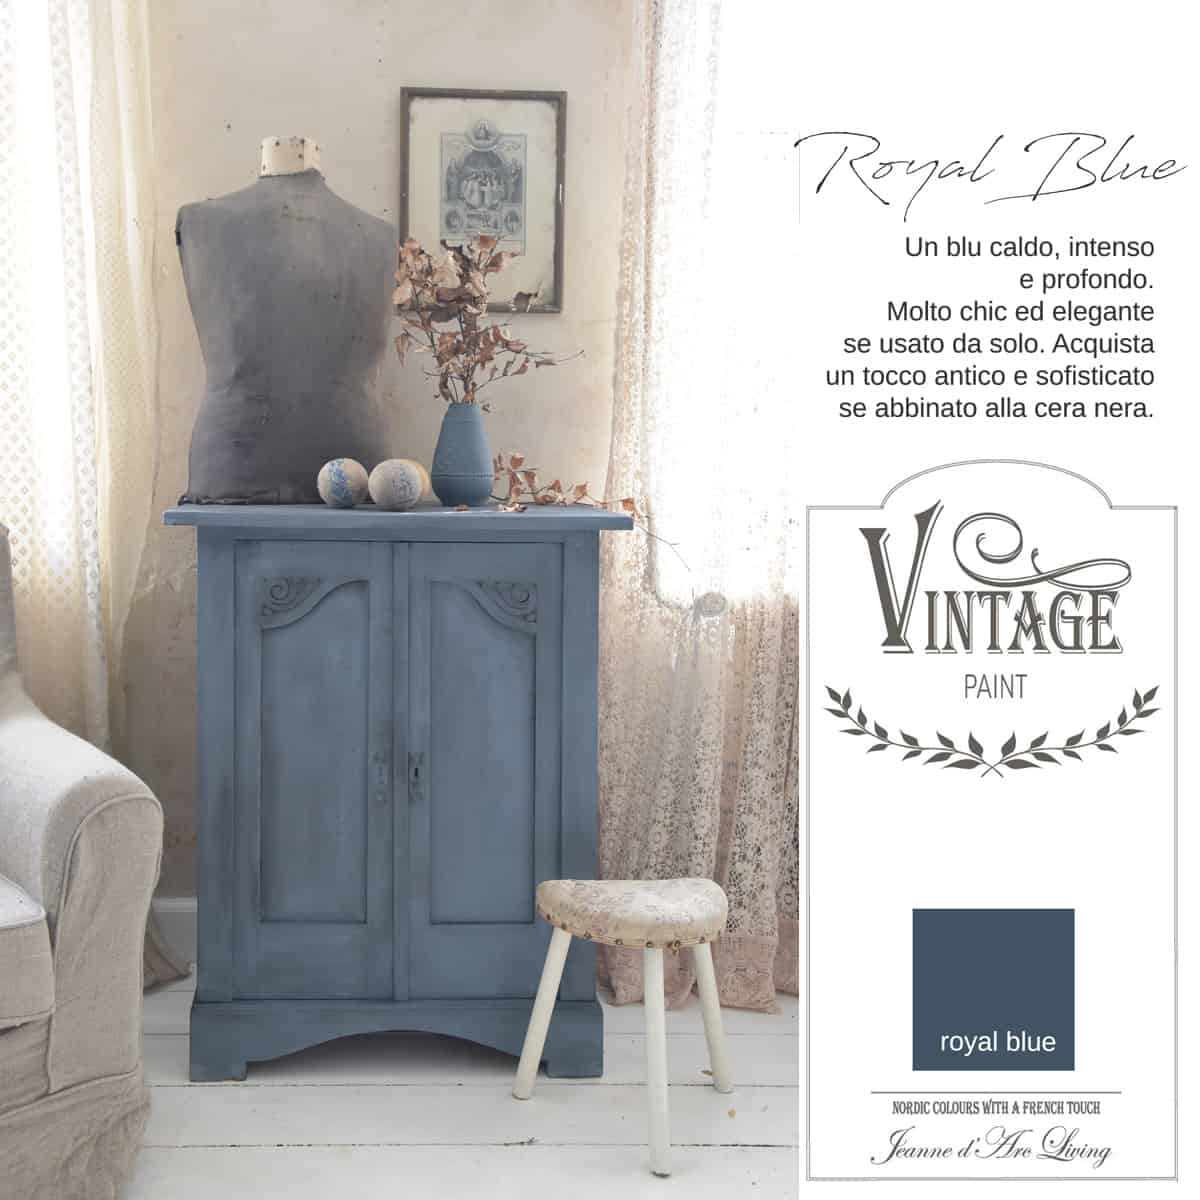 royal blue blu azzurro vintage chalk paint vernici shabby chic autentico look gesso